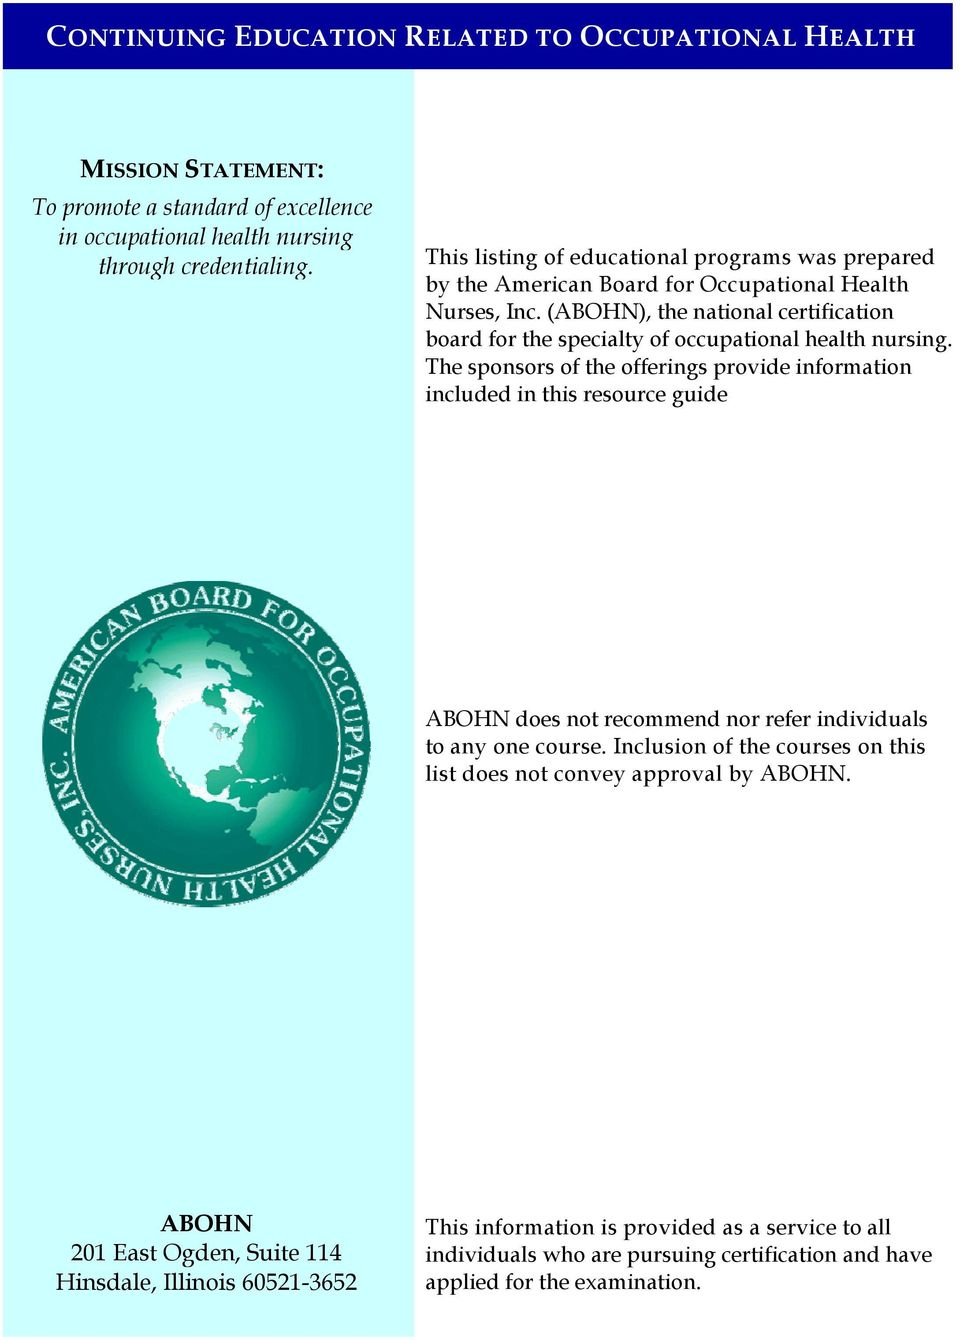 (ABOHN), the national certification board for the specialty of occupational health nursing.